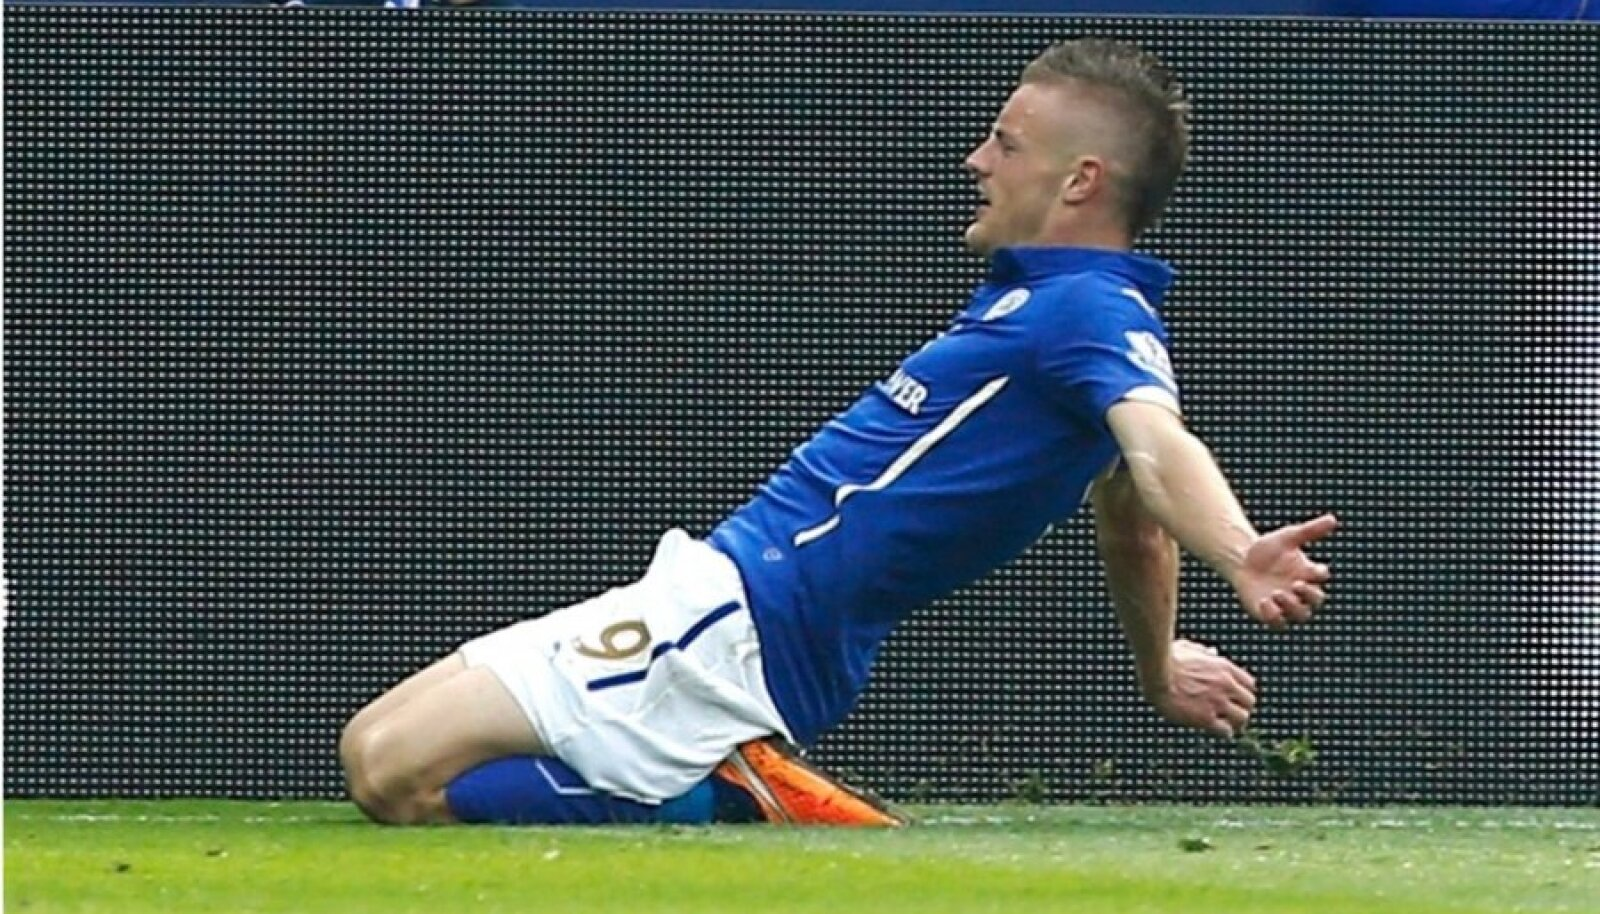 Leicester City's Vardy celebrates after scoring a goal against Manchester United during their English Premier League soccer match at the King Power stadium in Leicester